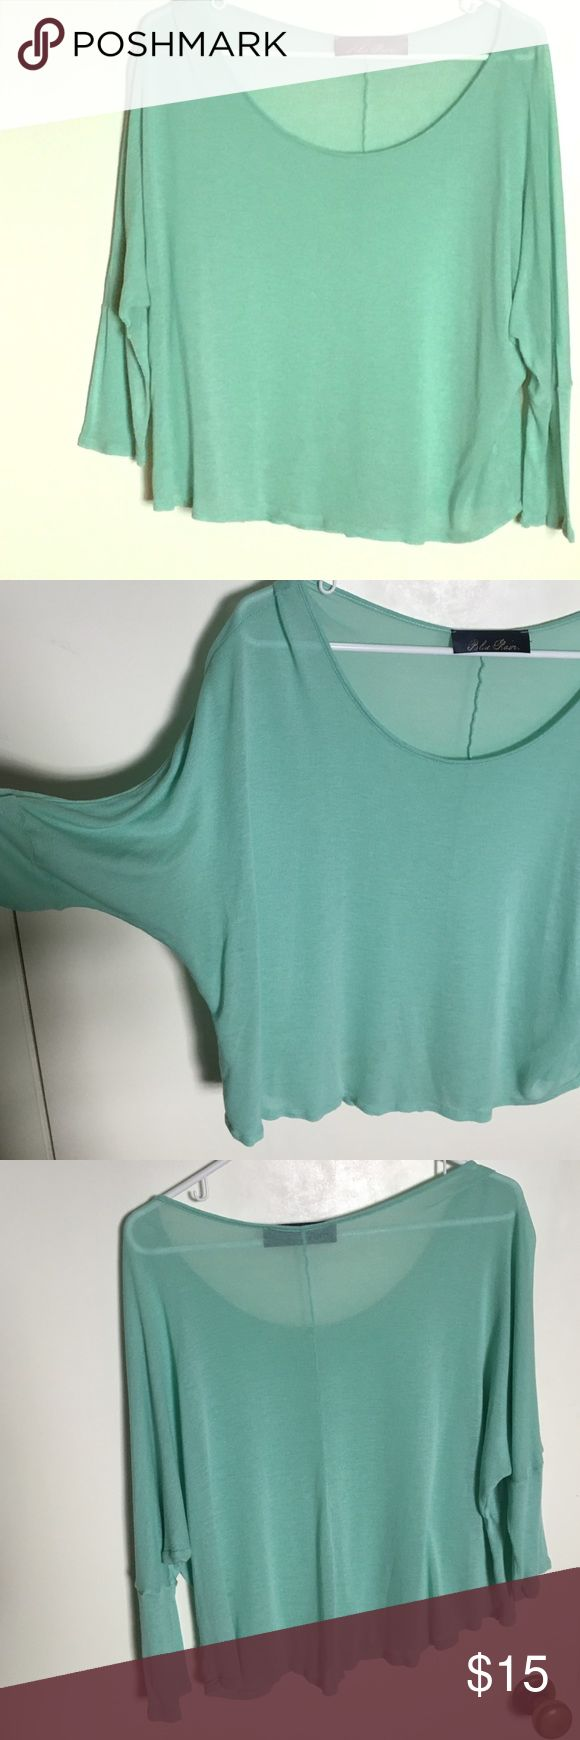 """Francesca's mint green long sleeved top Brand is """"blue rain"""" from Francesca's. Lightweight top hits at high waist with 3/4 length sleeves. Color is a beautiful mint green. I've only worn it once-it's just too short for me as I'm 5'11"""". No defects. Francesca's Collections Tops Tees - Long Sleeve"""